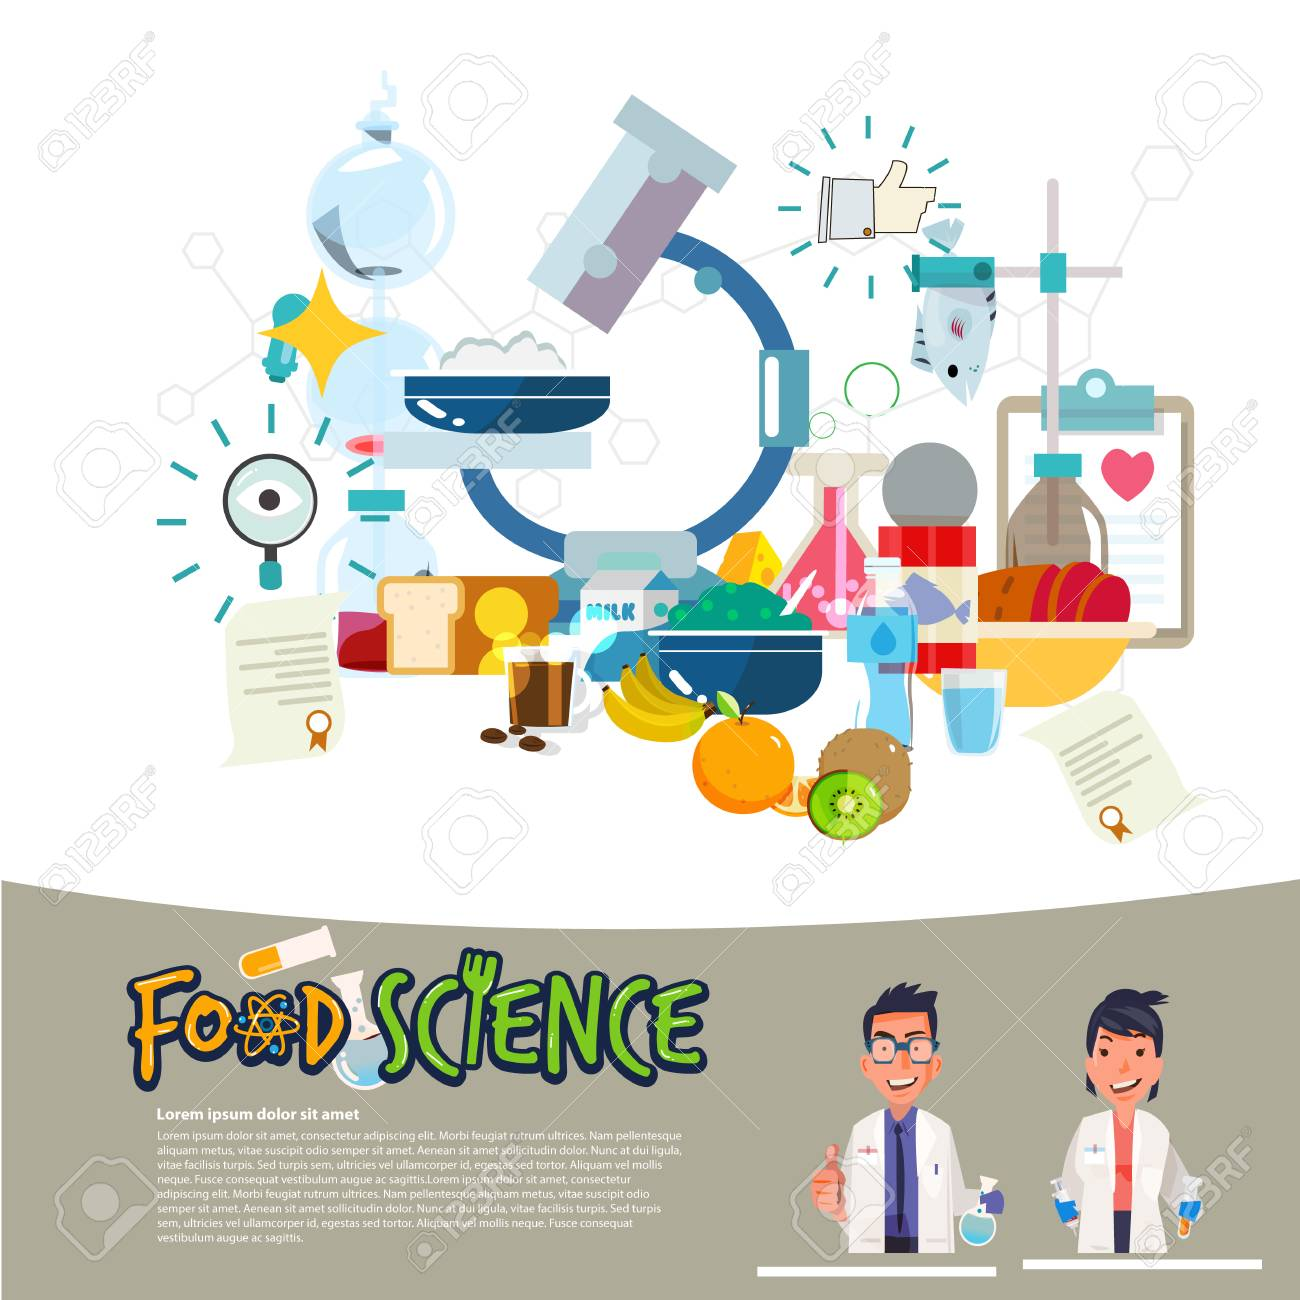 food science concept food laboratory typographic with microscope royalty free cliparts vectors and stock illustration image 96839333 food science concept food laboratory typographic with microscope